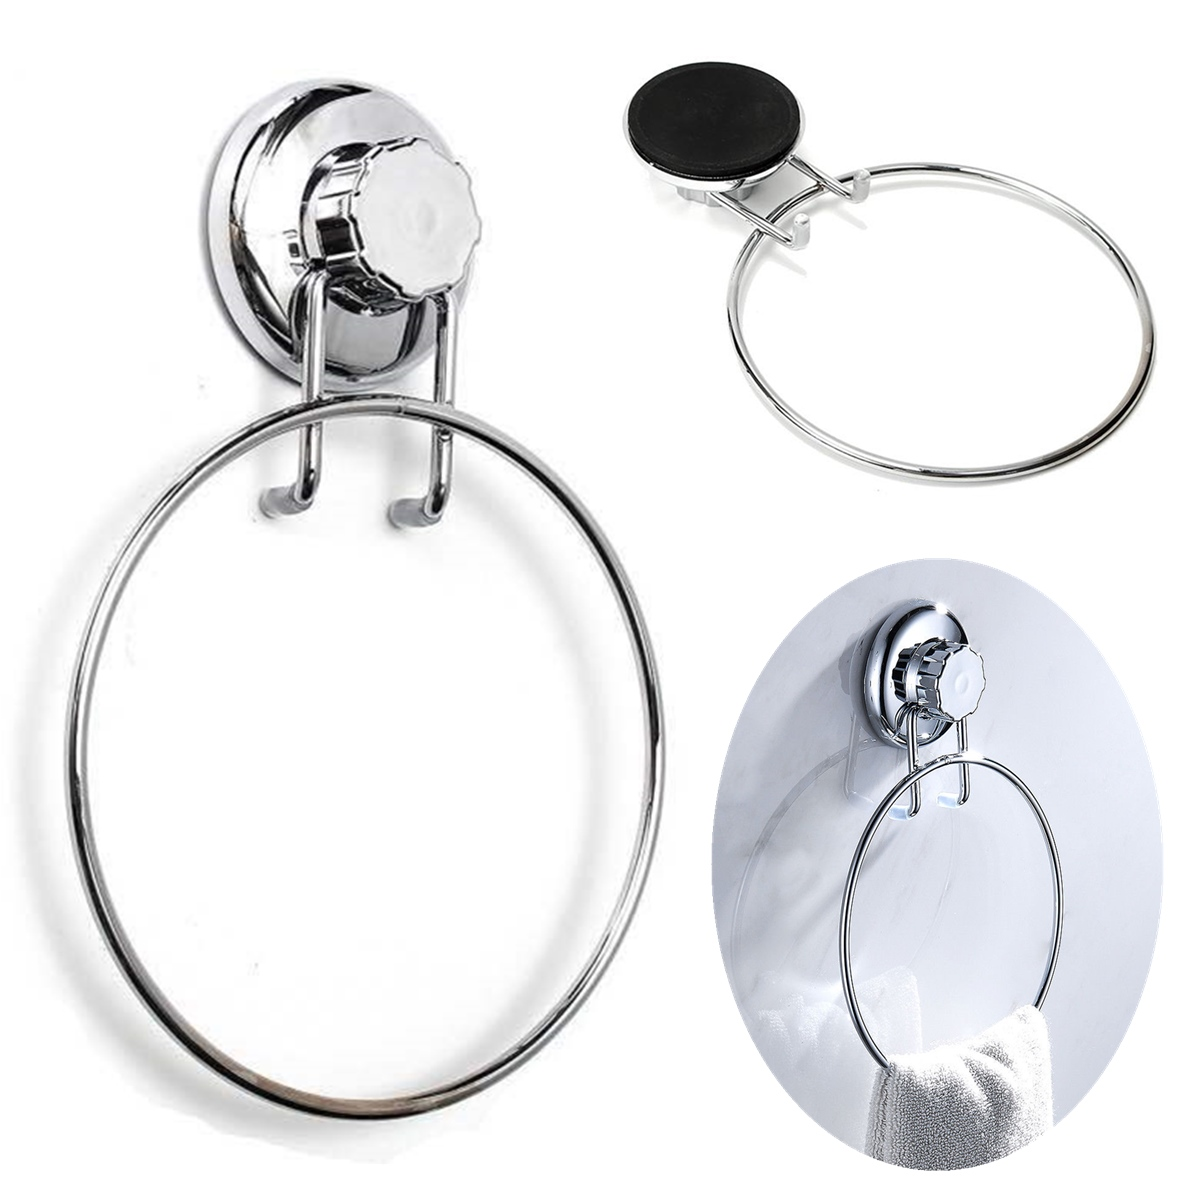 Towel Ring Holder Chrome No-Drilling Suction Cup Bathro